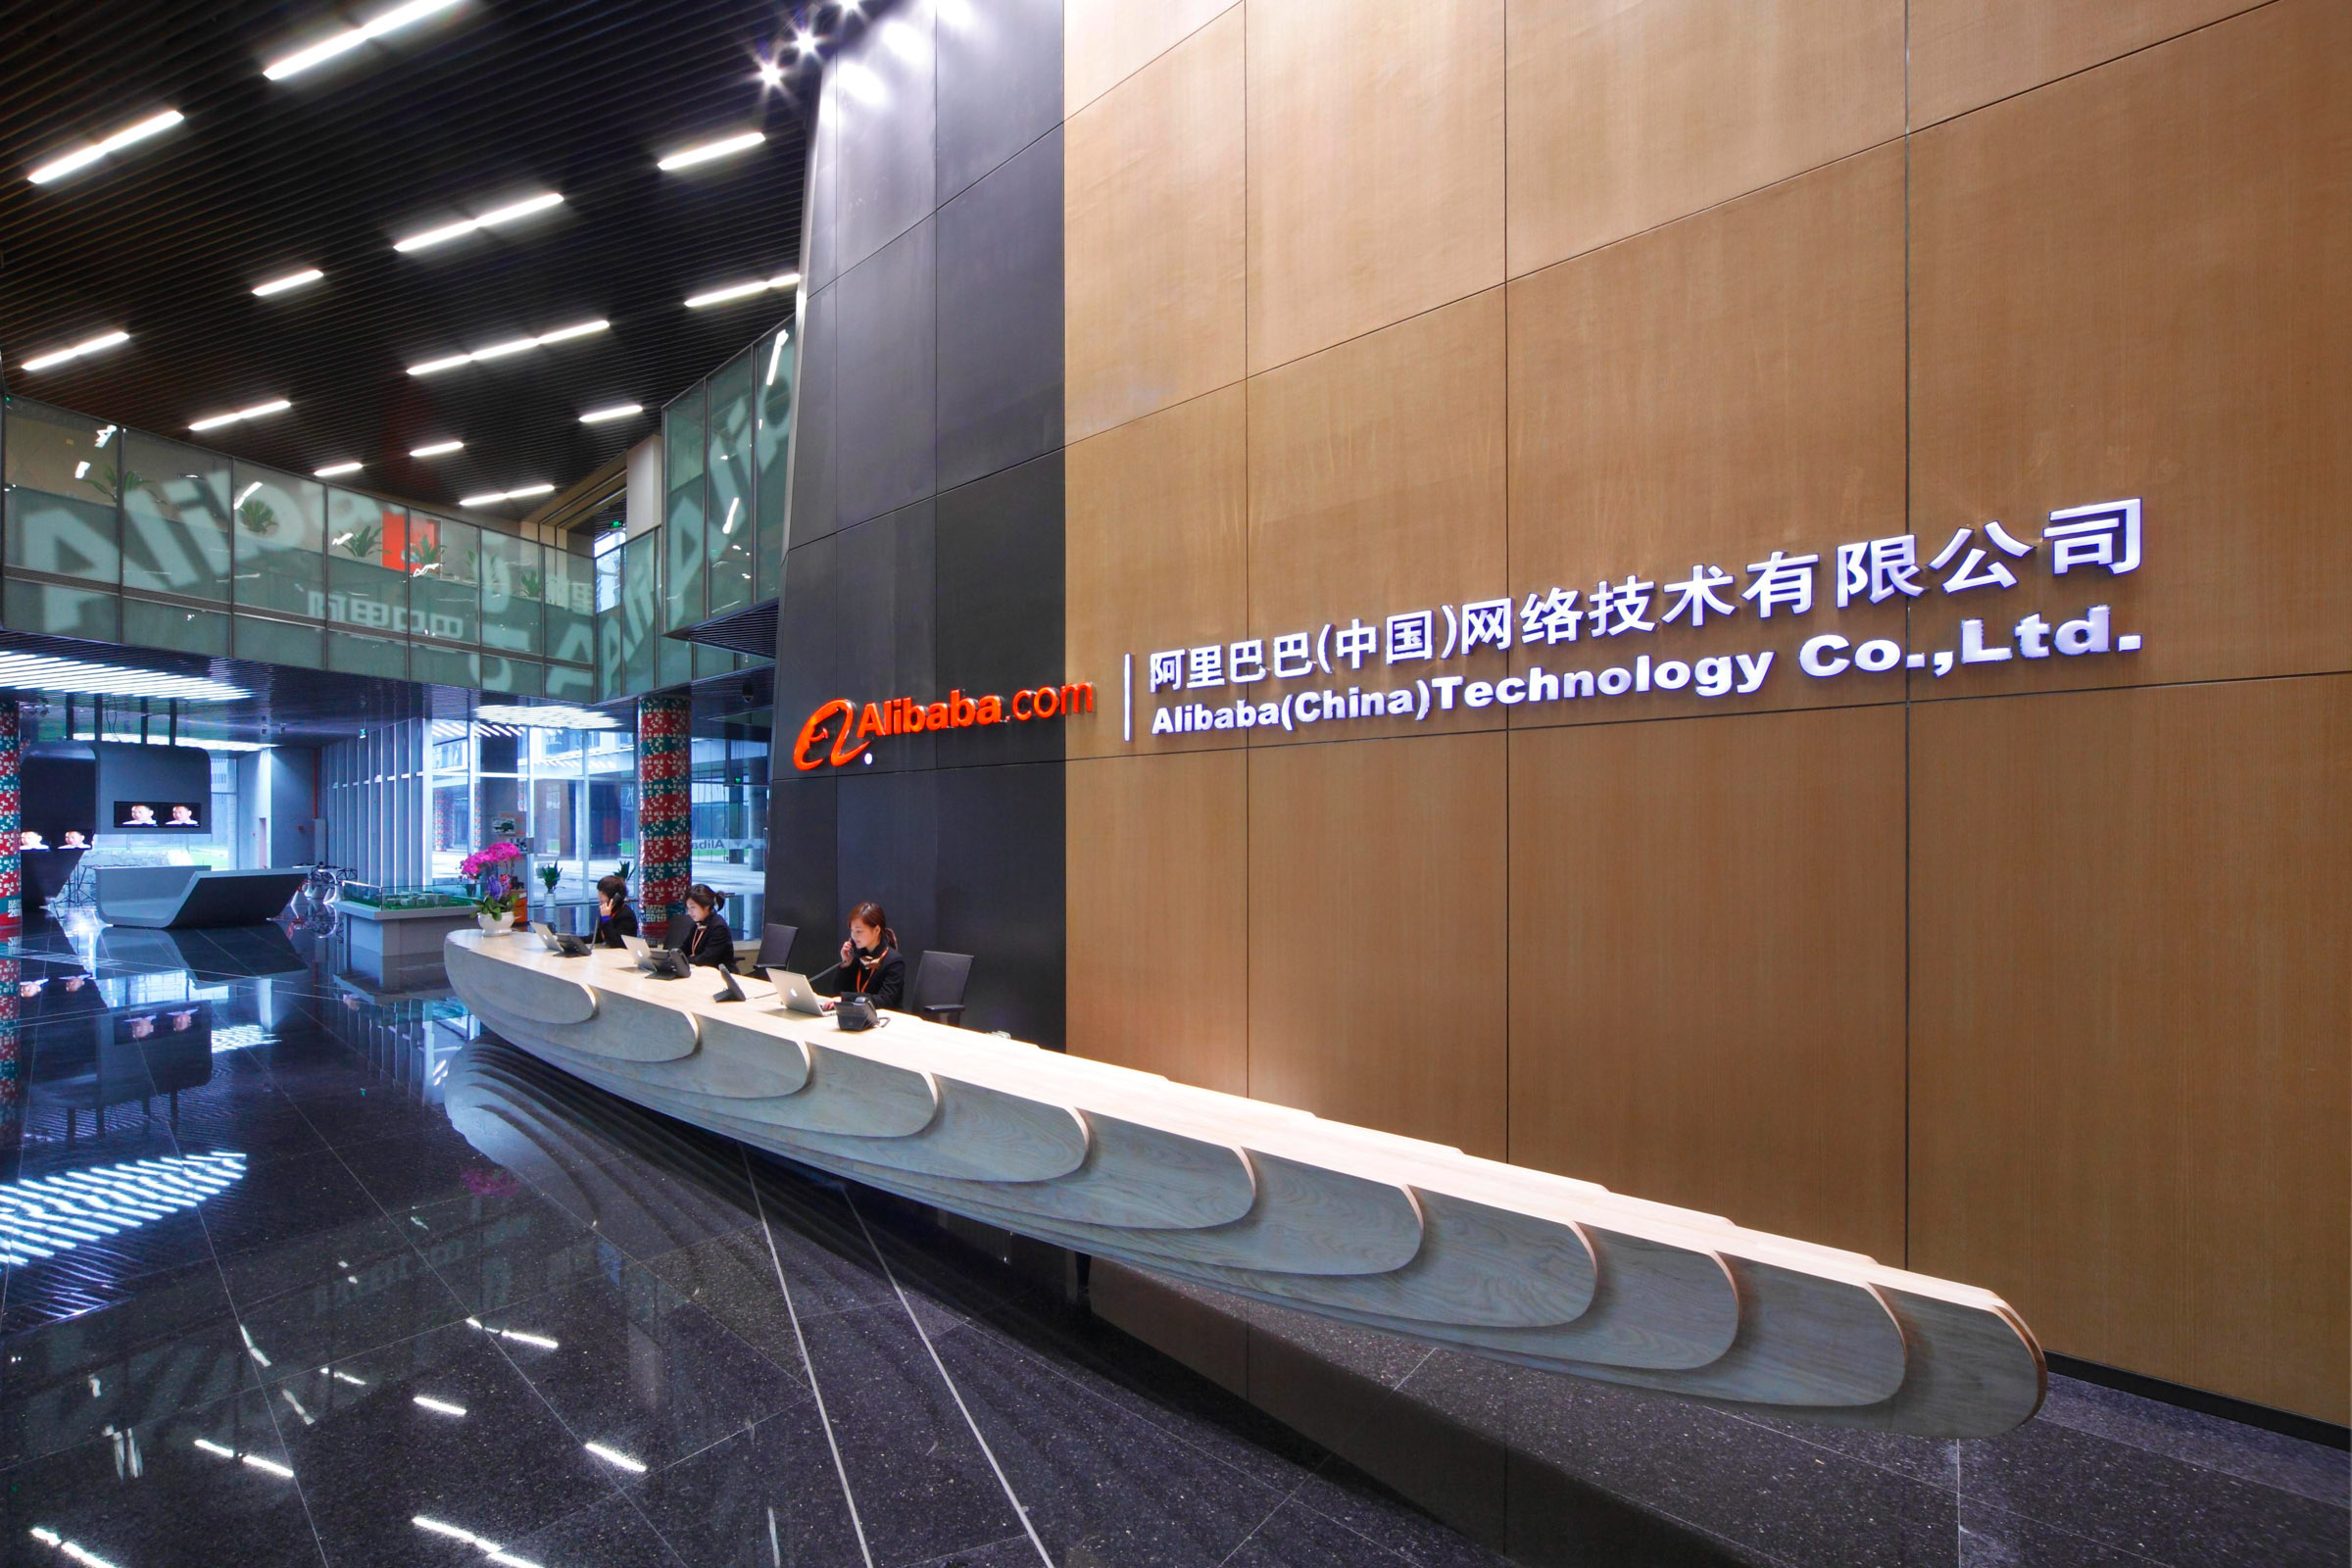 Alibaba uses data analytics to link SMEs with trusted Chinese suppliers